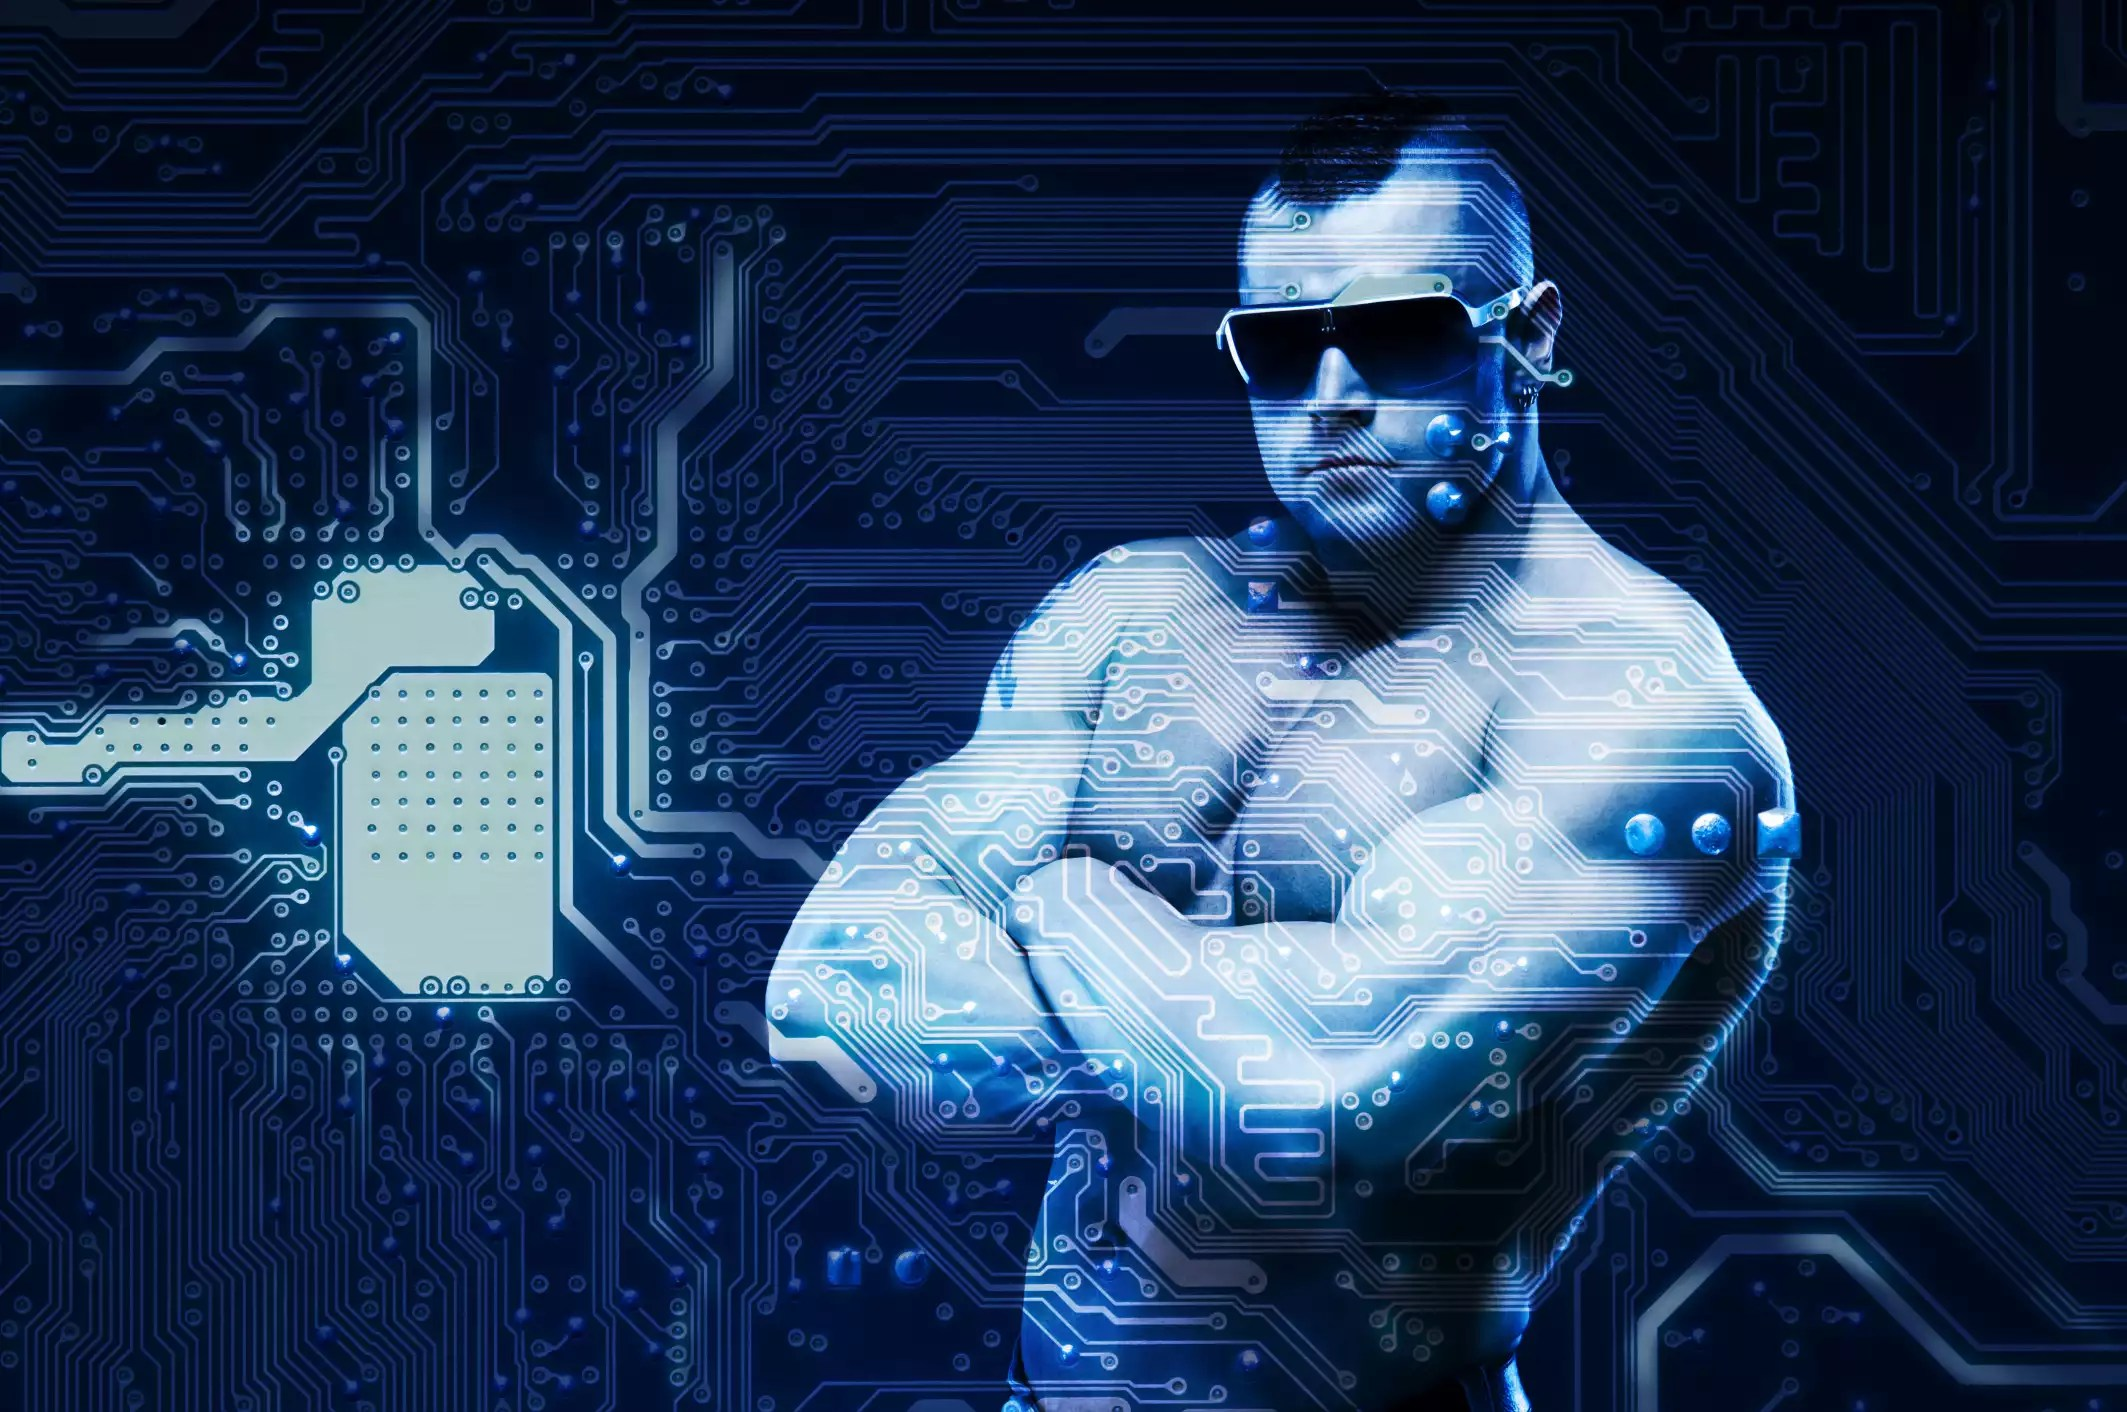 Image of a strong man, indicating strong encryption or passwords - The Internet Tips